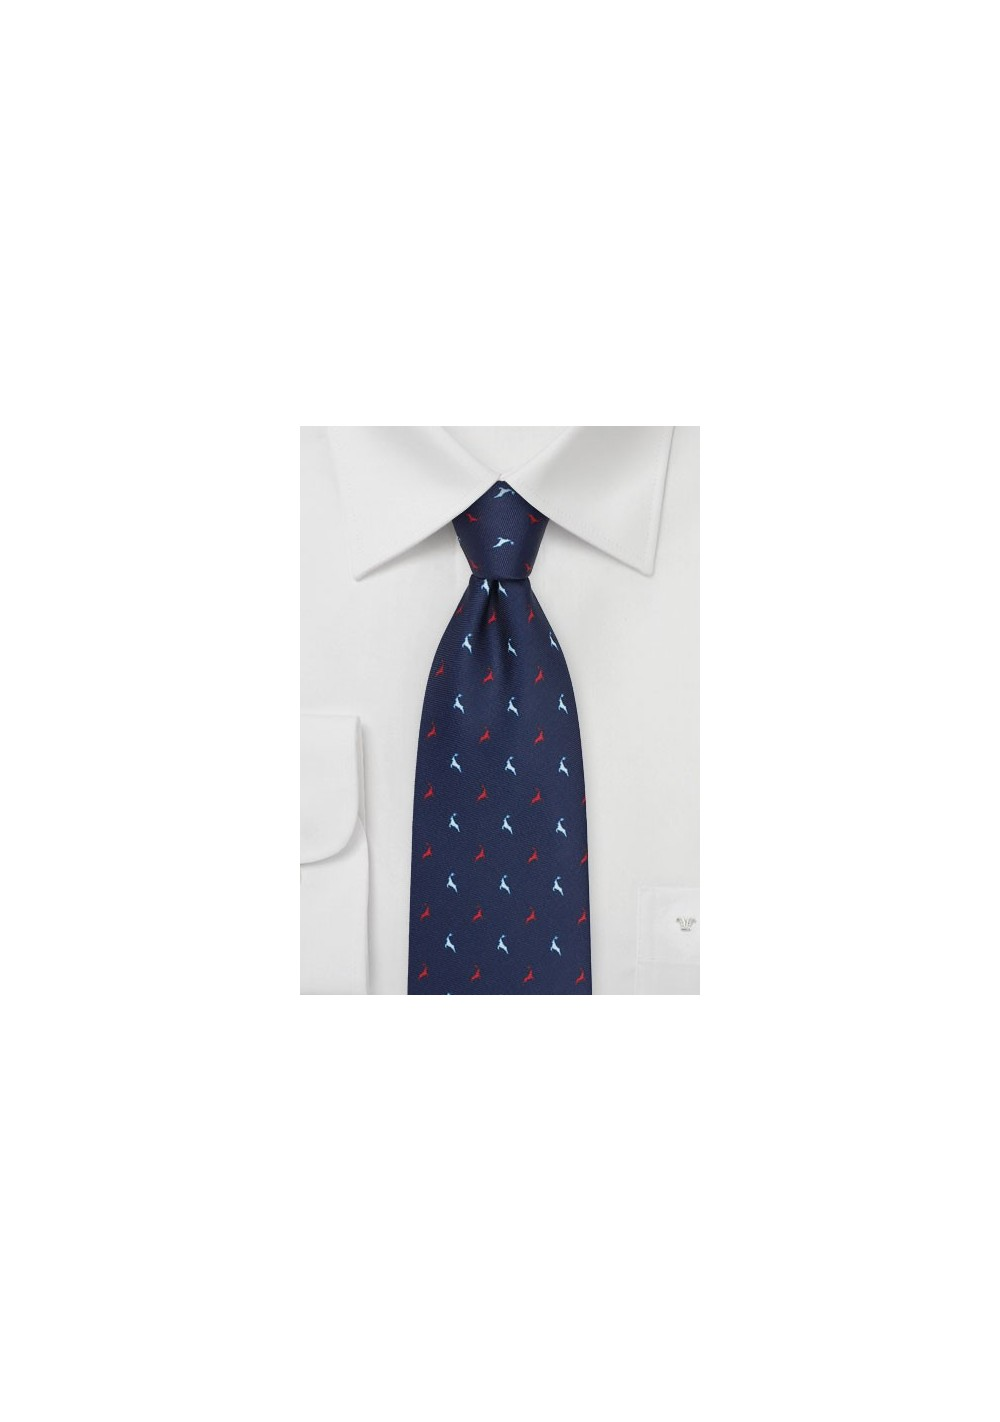 Reindeer Print Tie in Navy, Red, and White